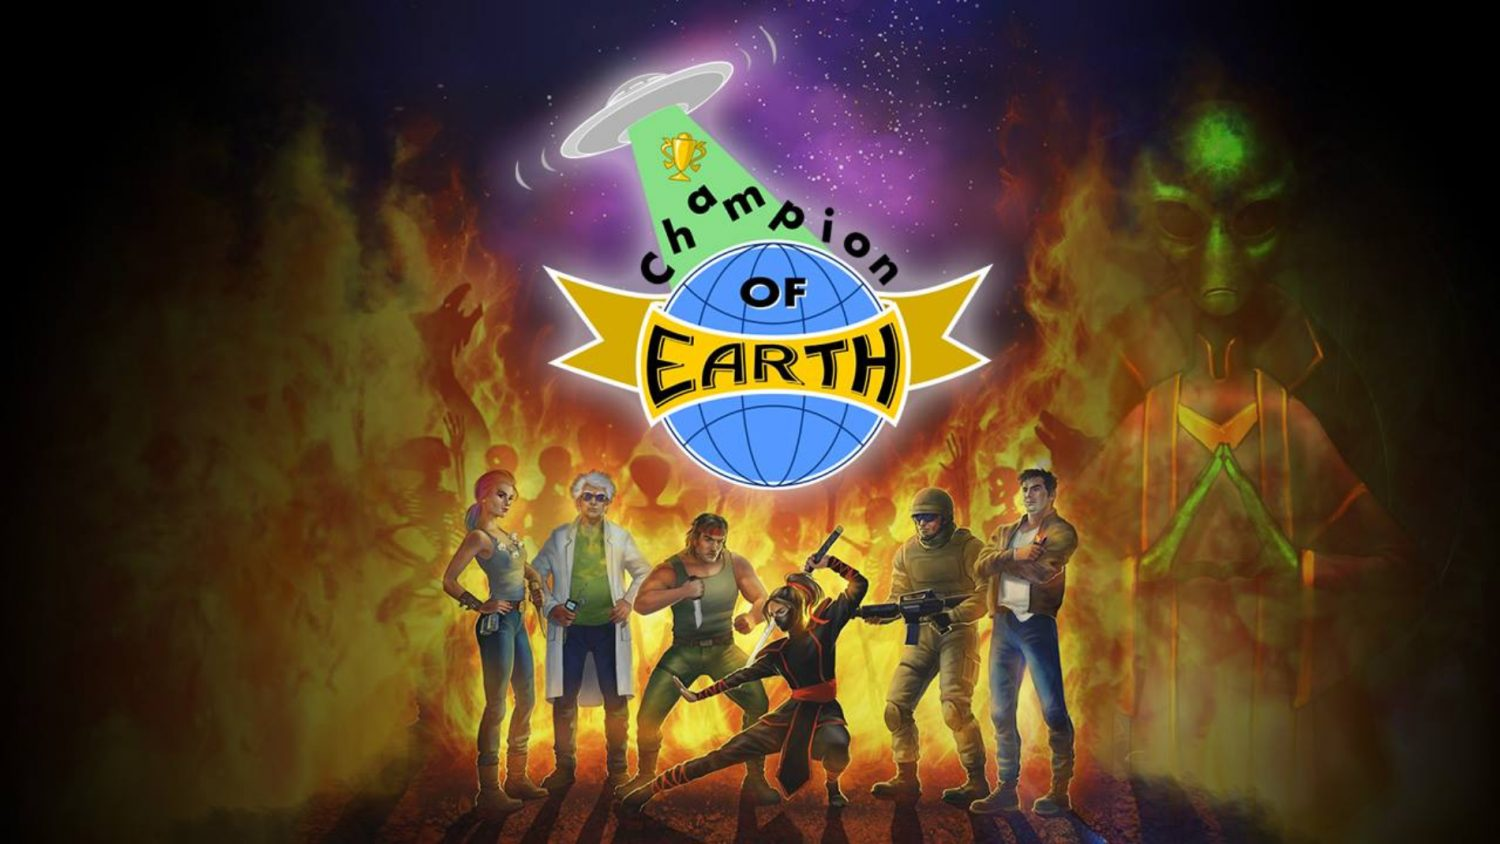 Champion of earth card game